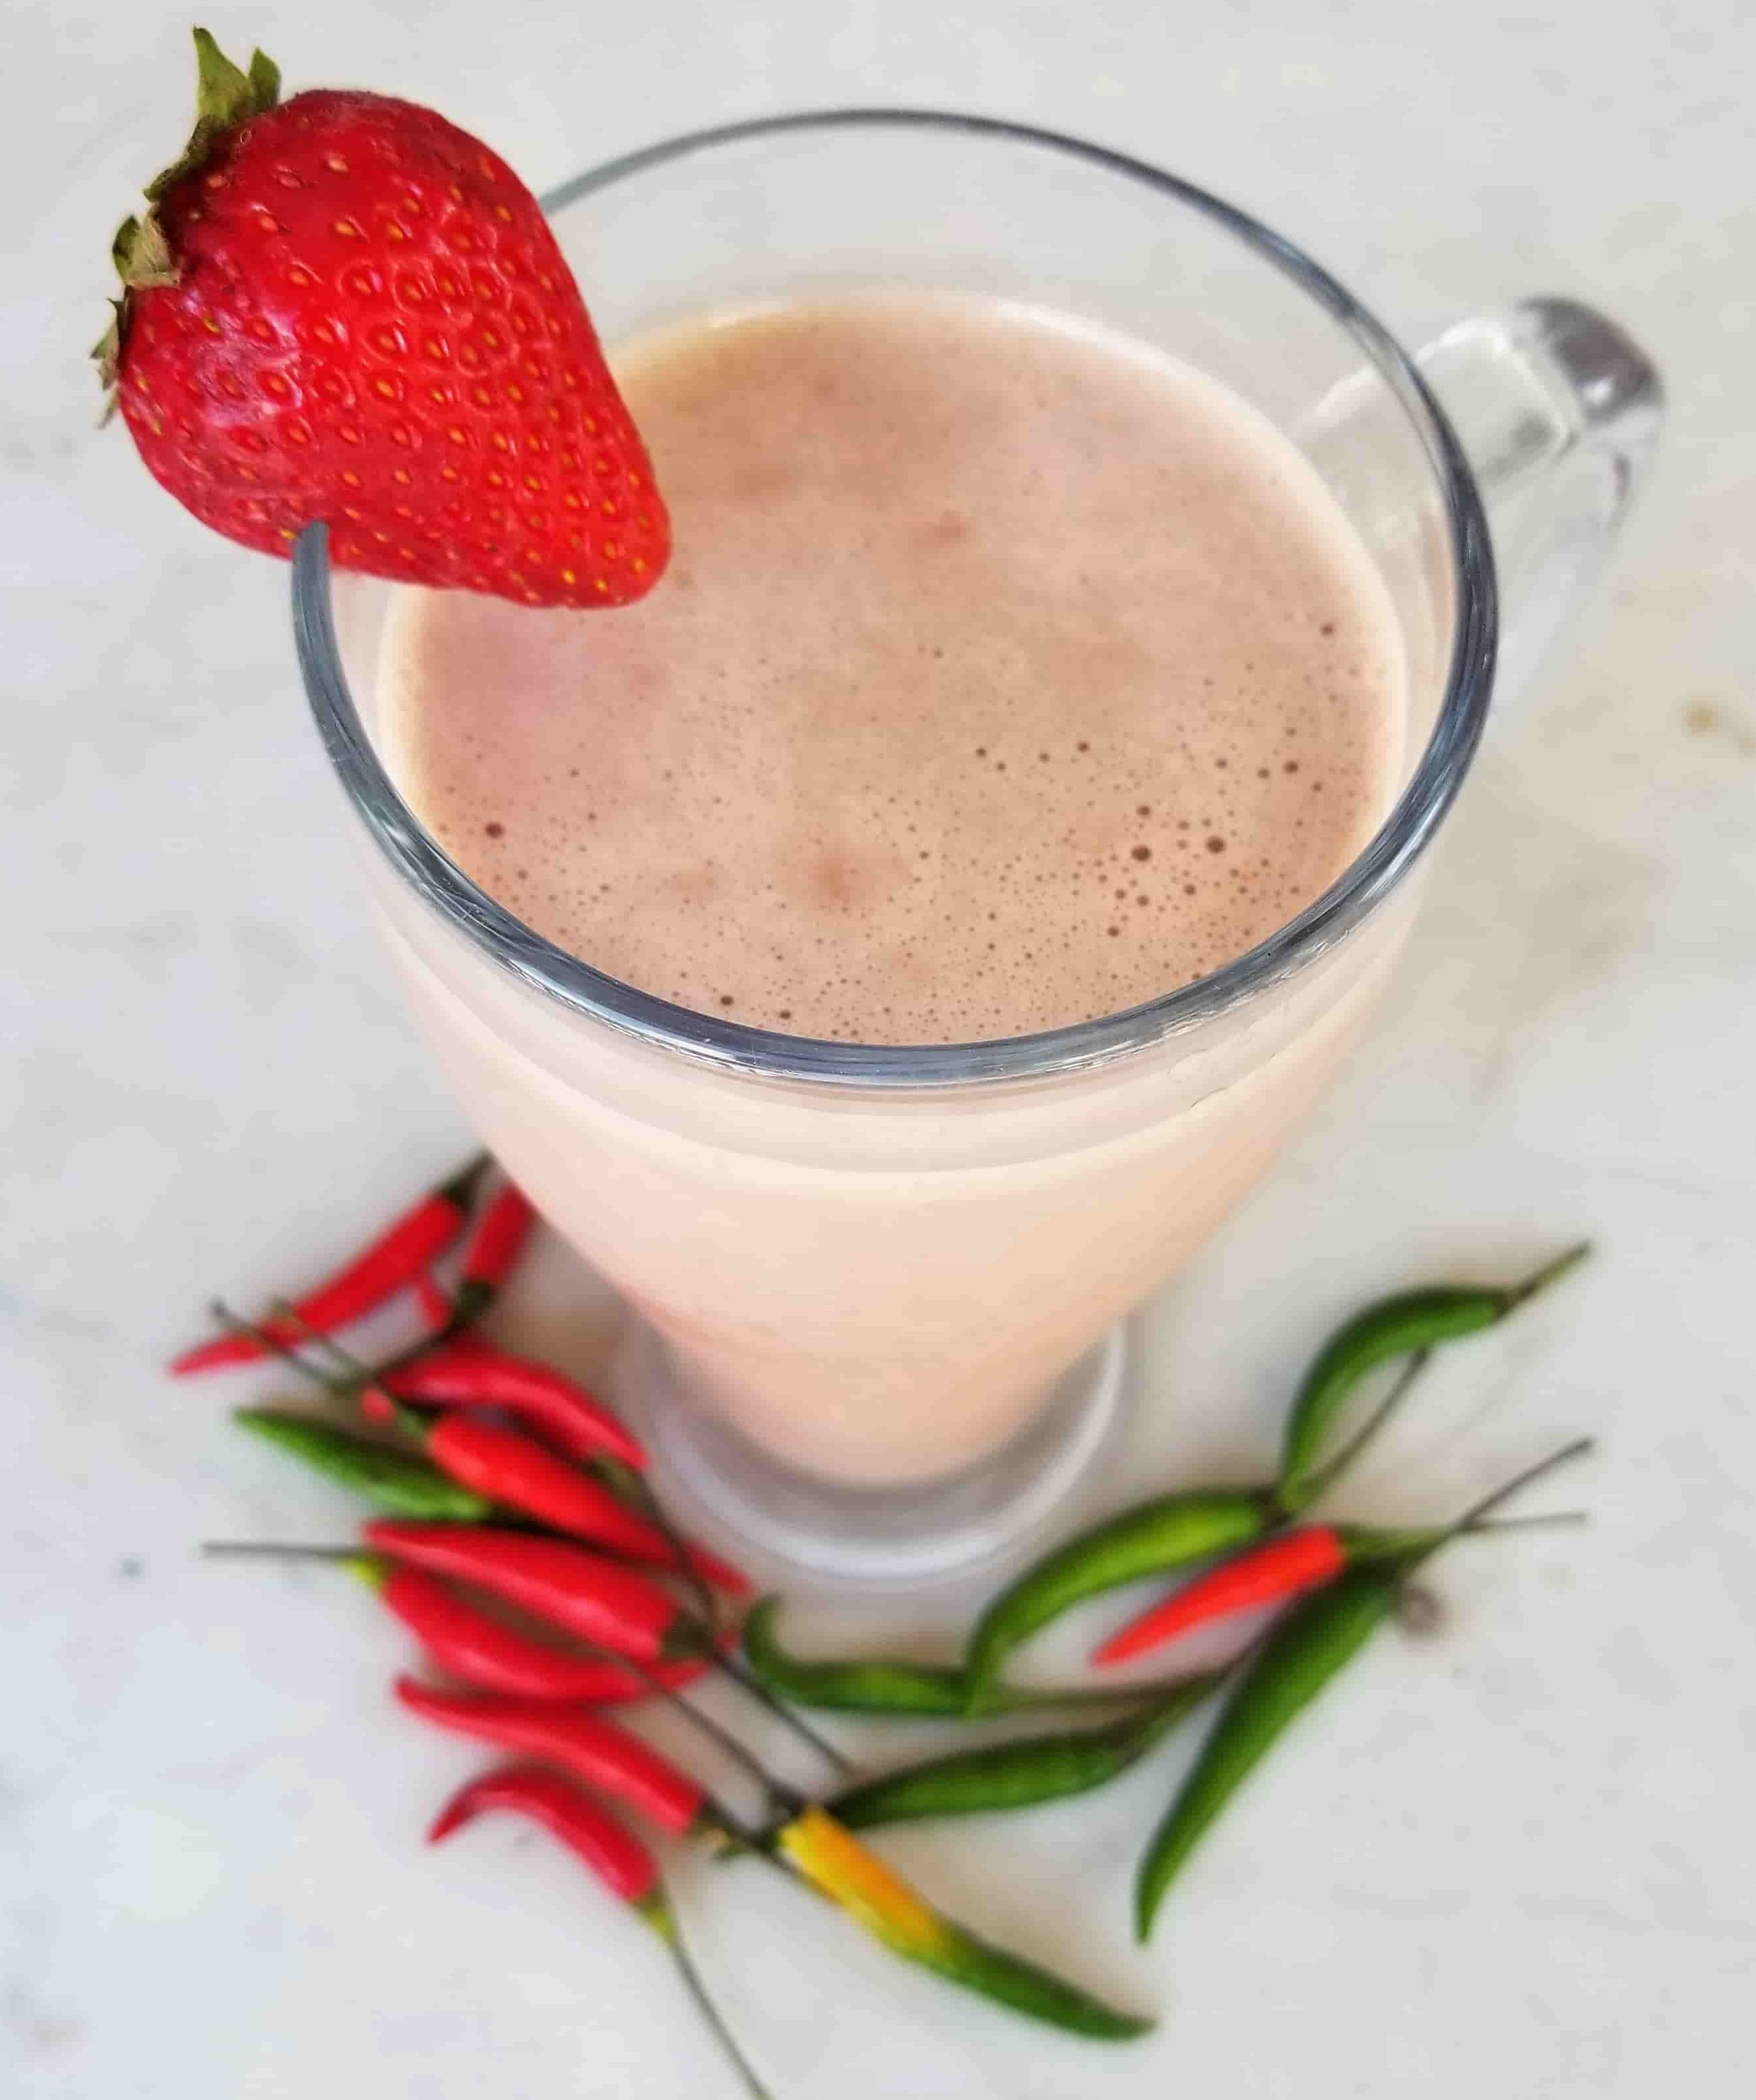 Thai Chili Chocolate Strawberry Protein Smoothie- A Ménage à Trois of Sensual Chocolate Strawberry And Peppers to Help Spice Things Up